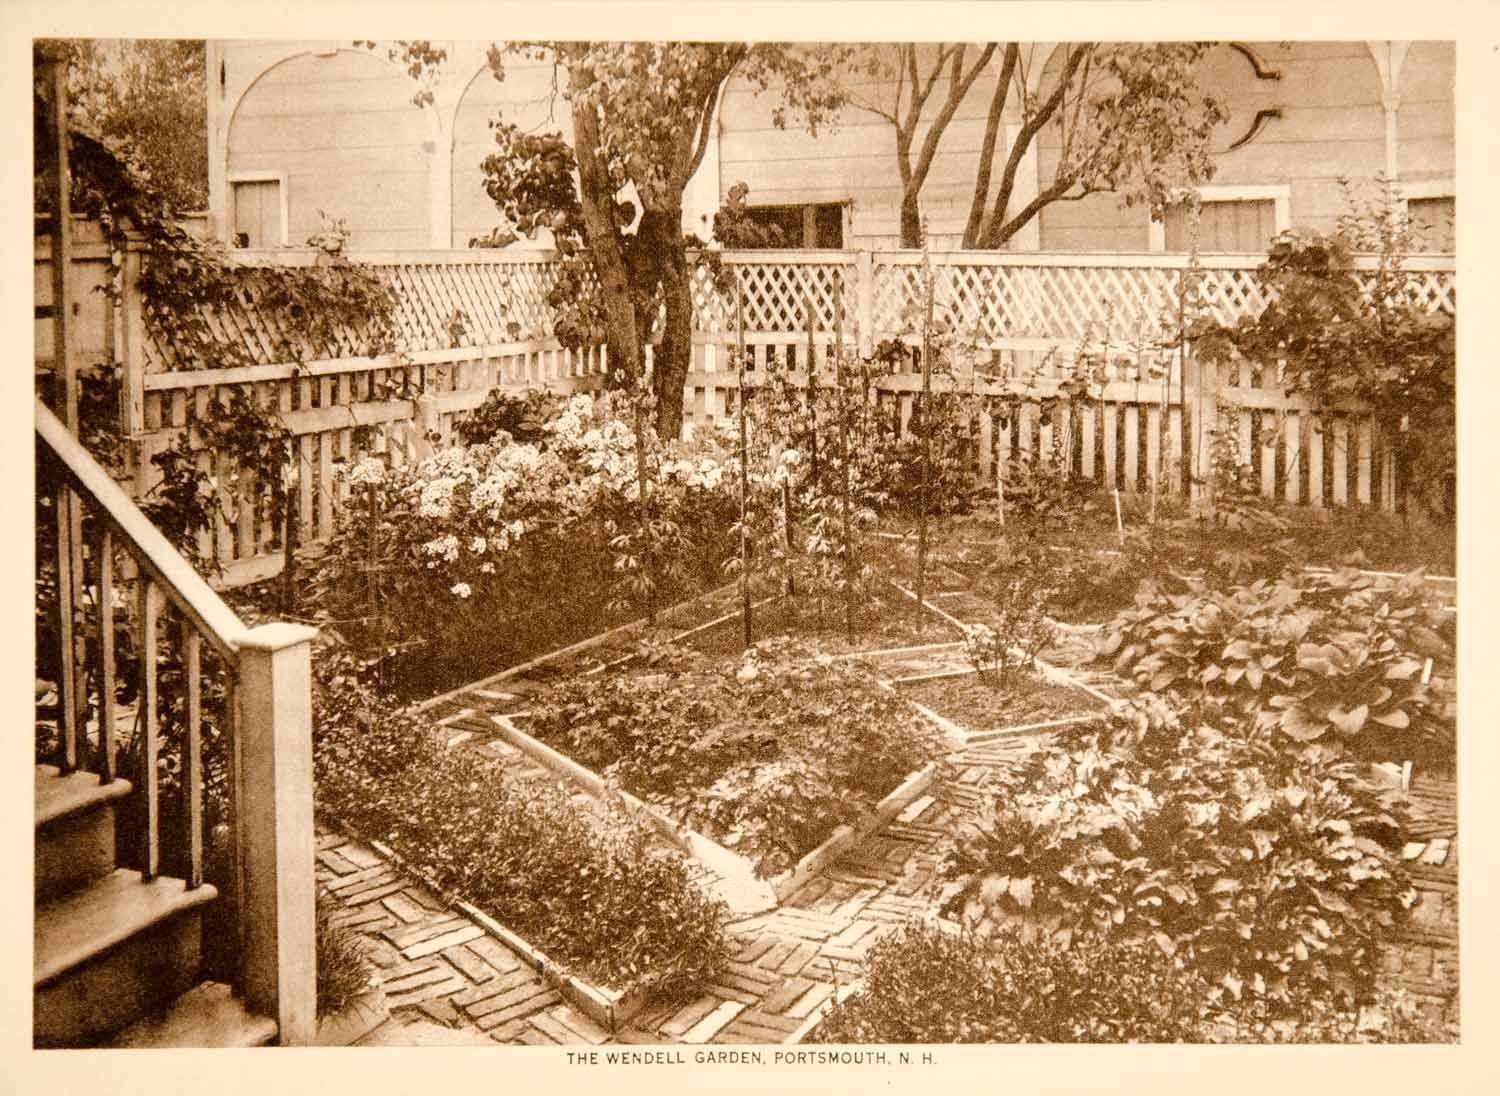 1916 Photogravure Barrett Wendell Garden Portsmouth New Hampshire Hist - Period Paper